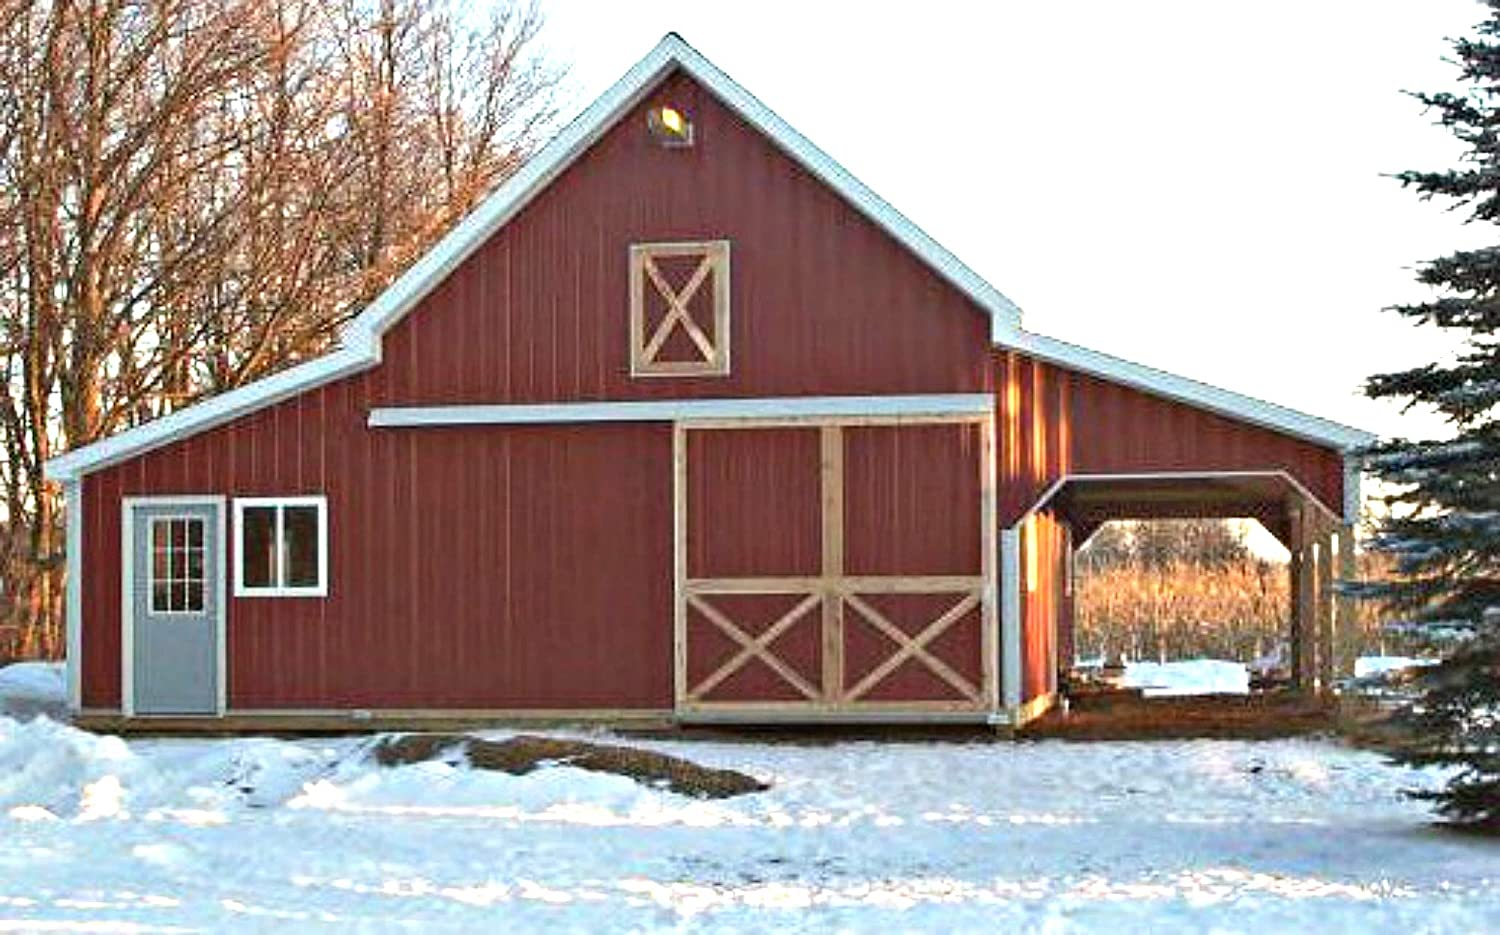 41 Small Barn Designs Complete Pole Barn Construction Blueprints